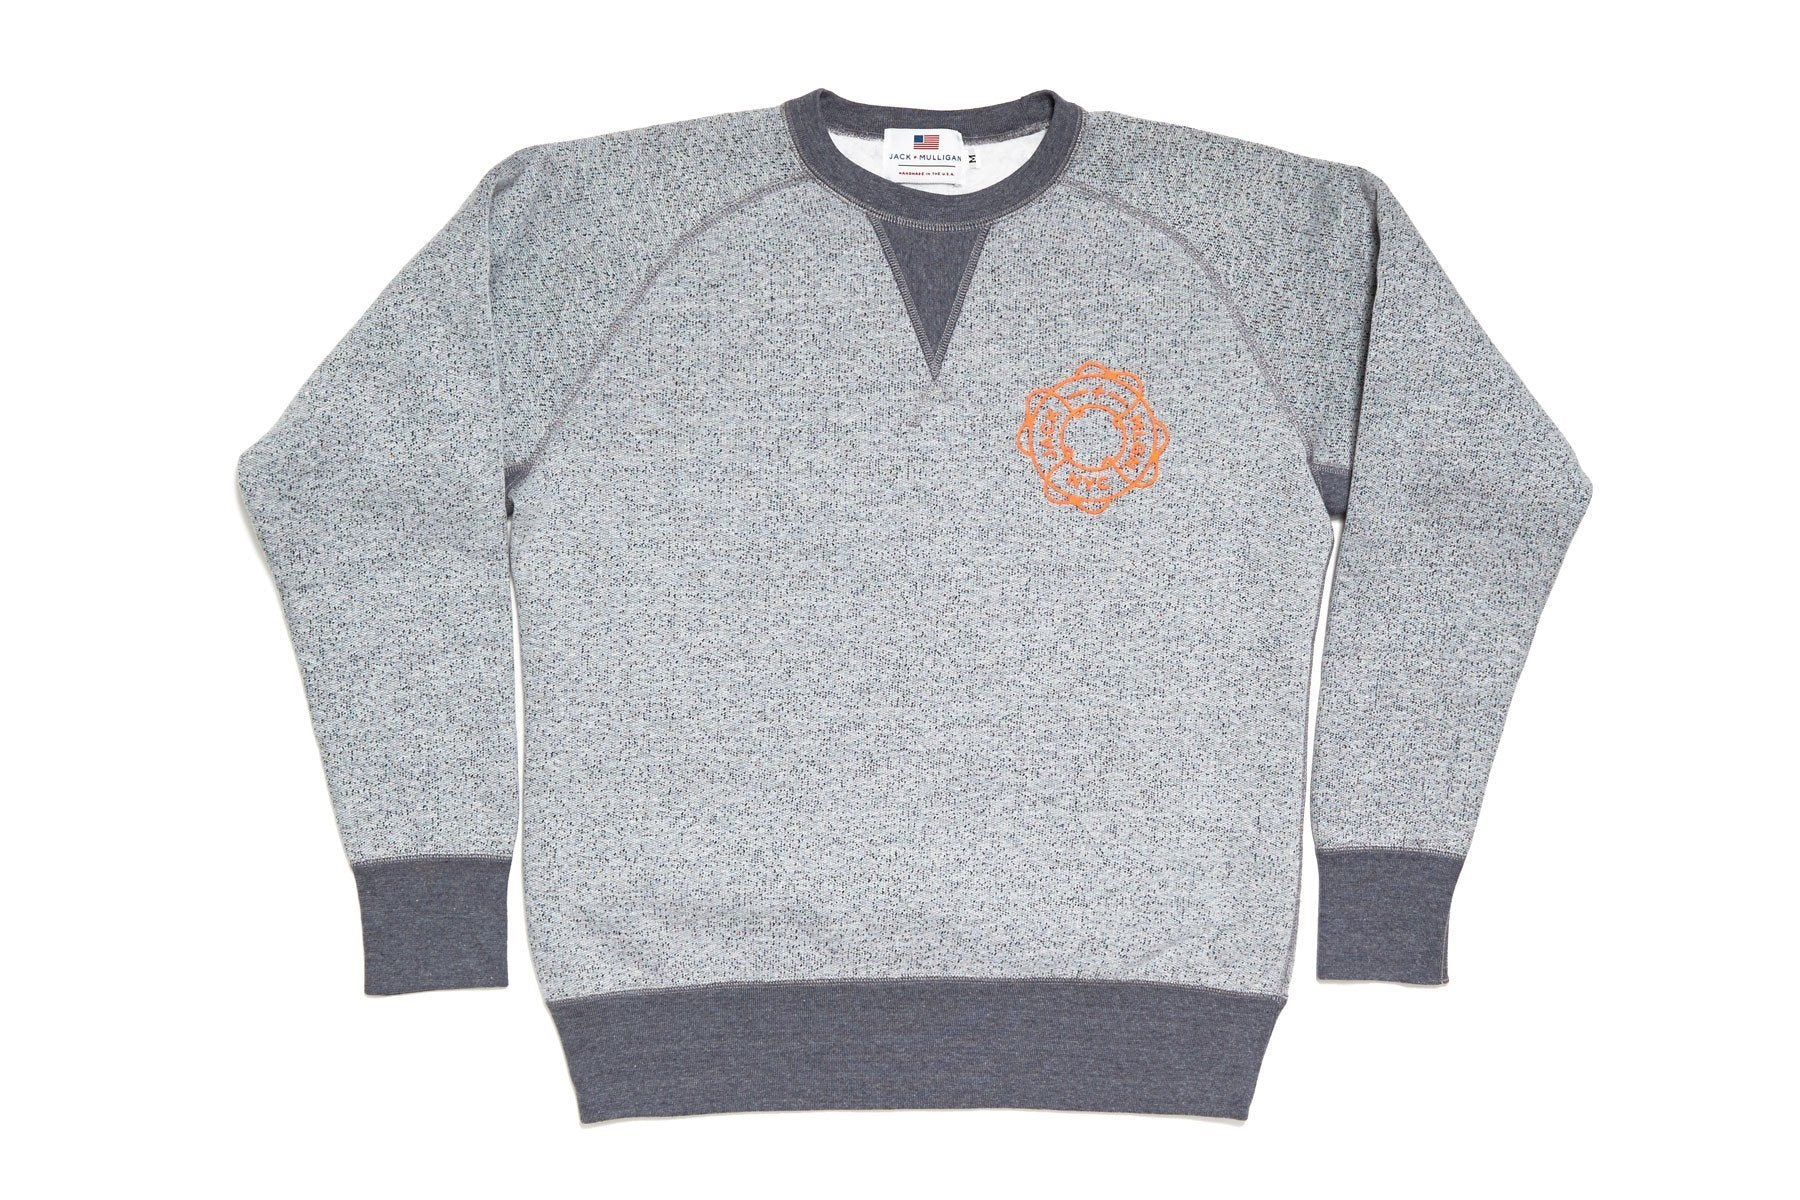 Dark and Stormy Crewneck Sweatshirt - Gray Clothing Jack + Mulligan